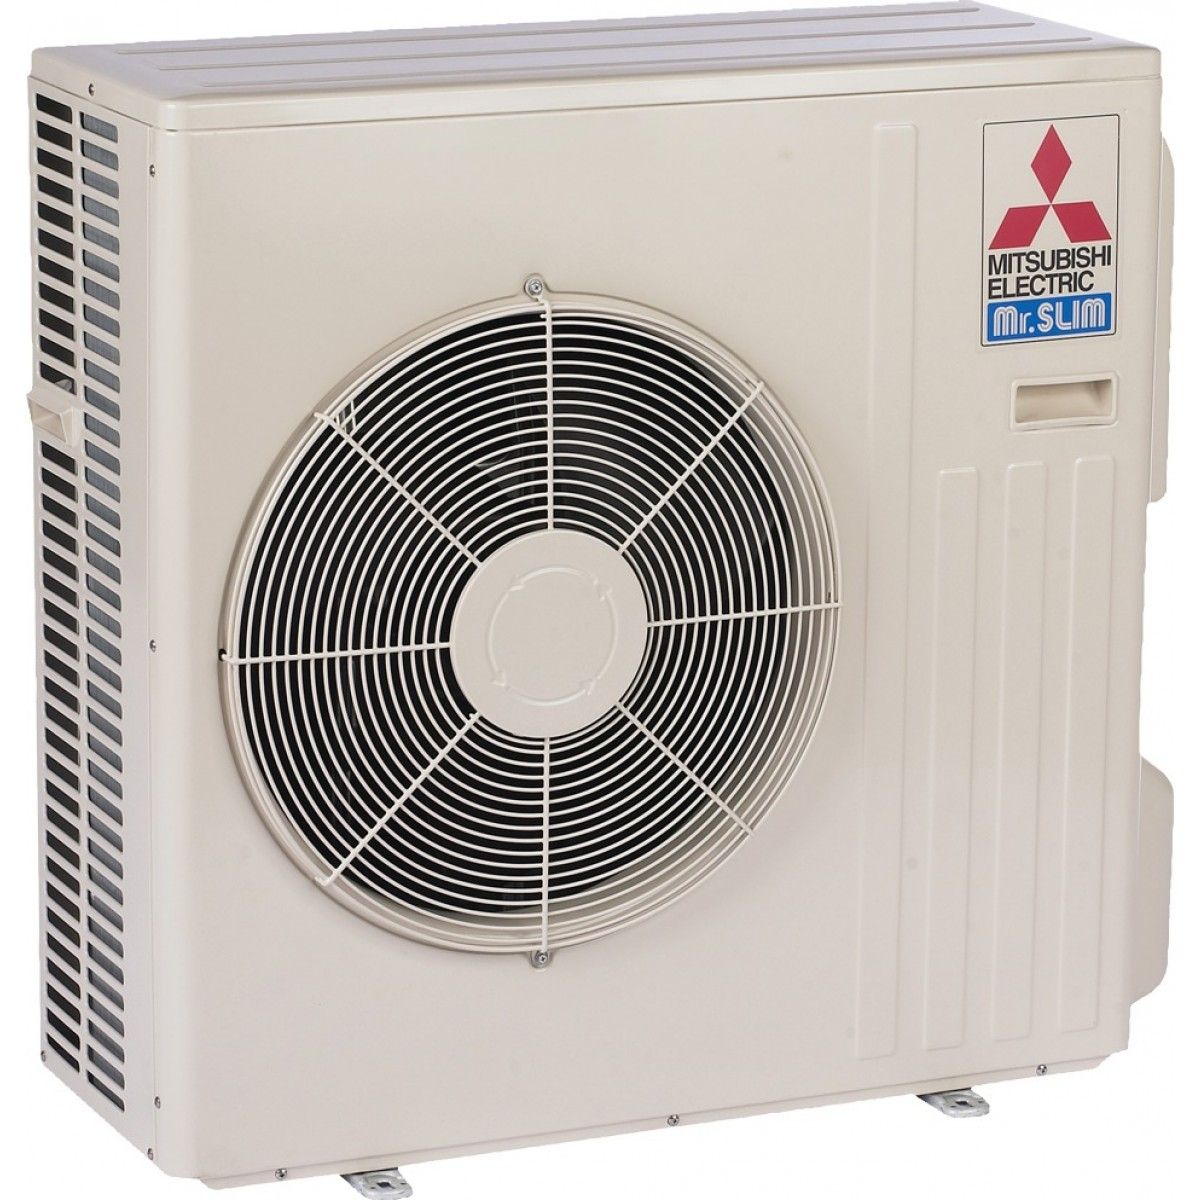 Home Air Conditioners Health further Respironics Simply Go together with 26001 further Southfield Heating Cooling in addition 36k Btu Mitsubishi Muyd Air Conditioner Outdoor Unit. on ac unit prices for home